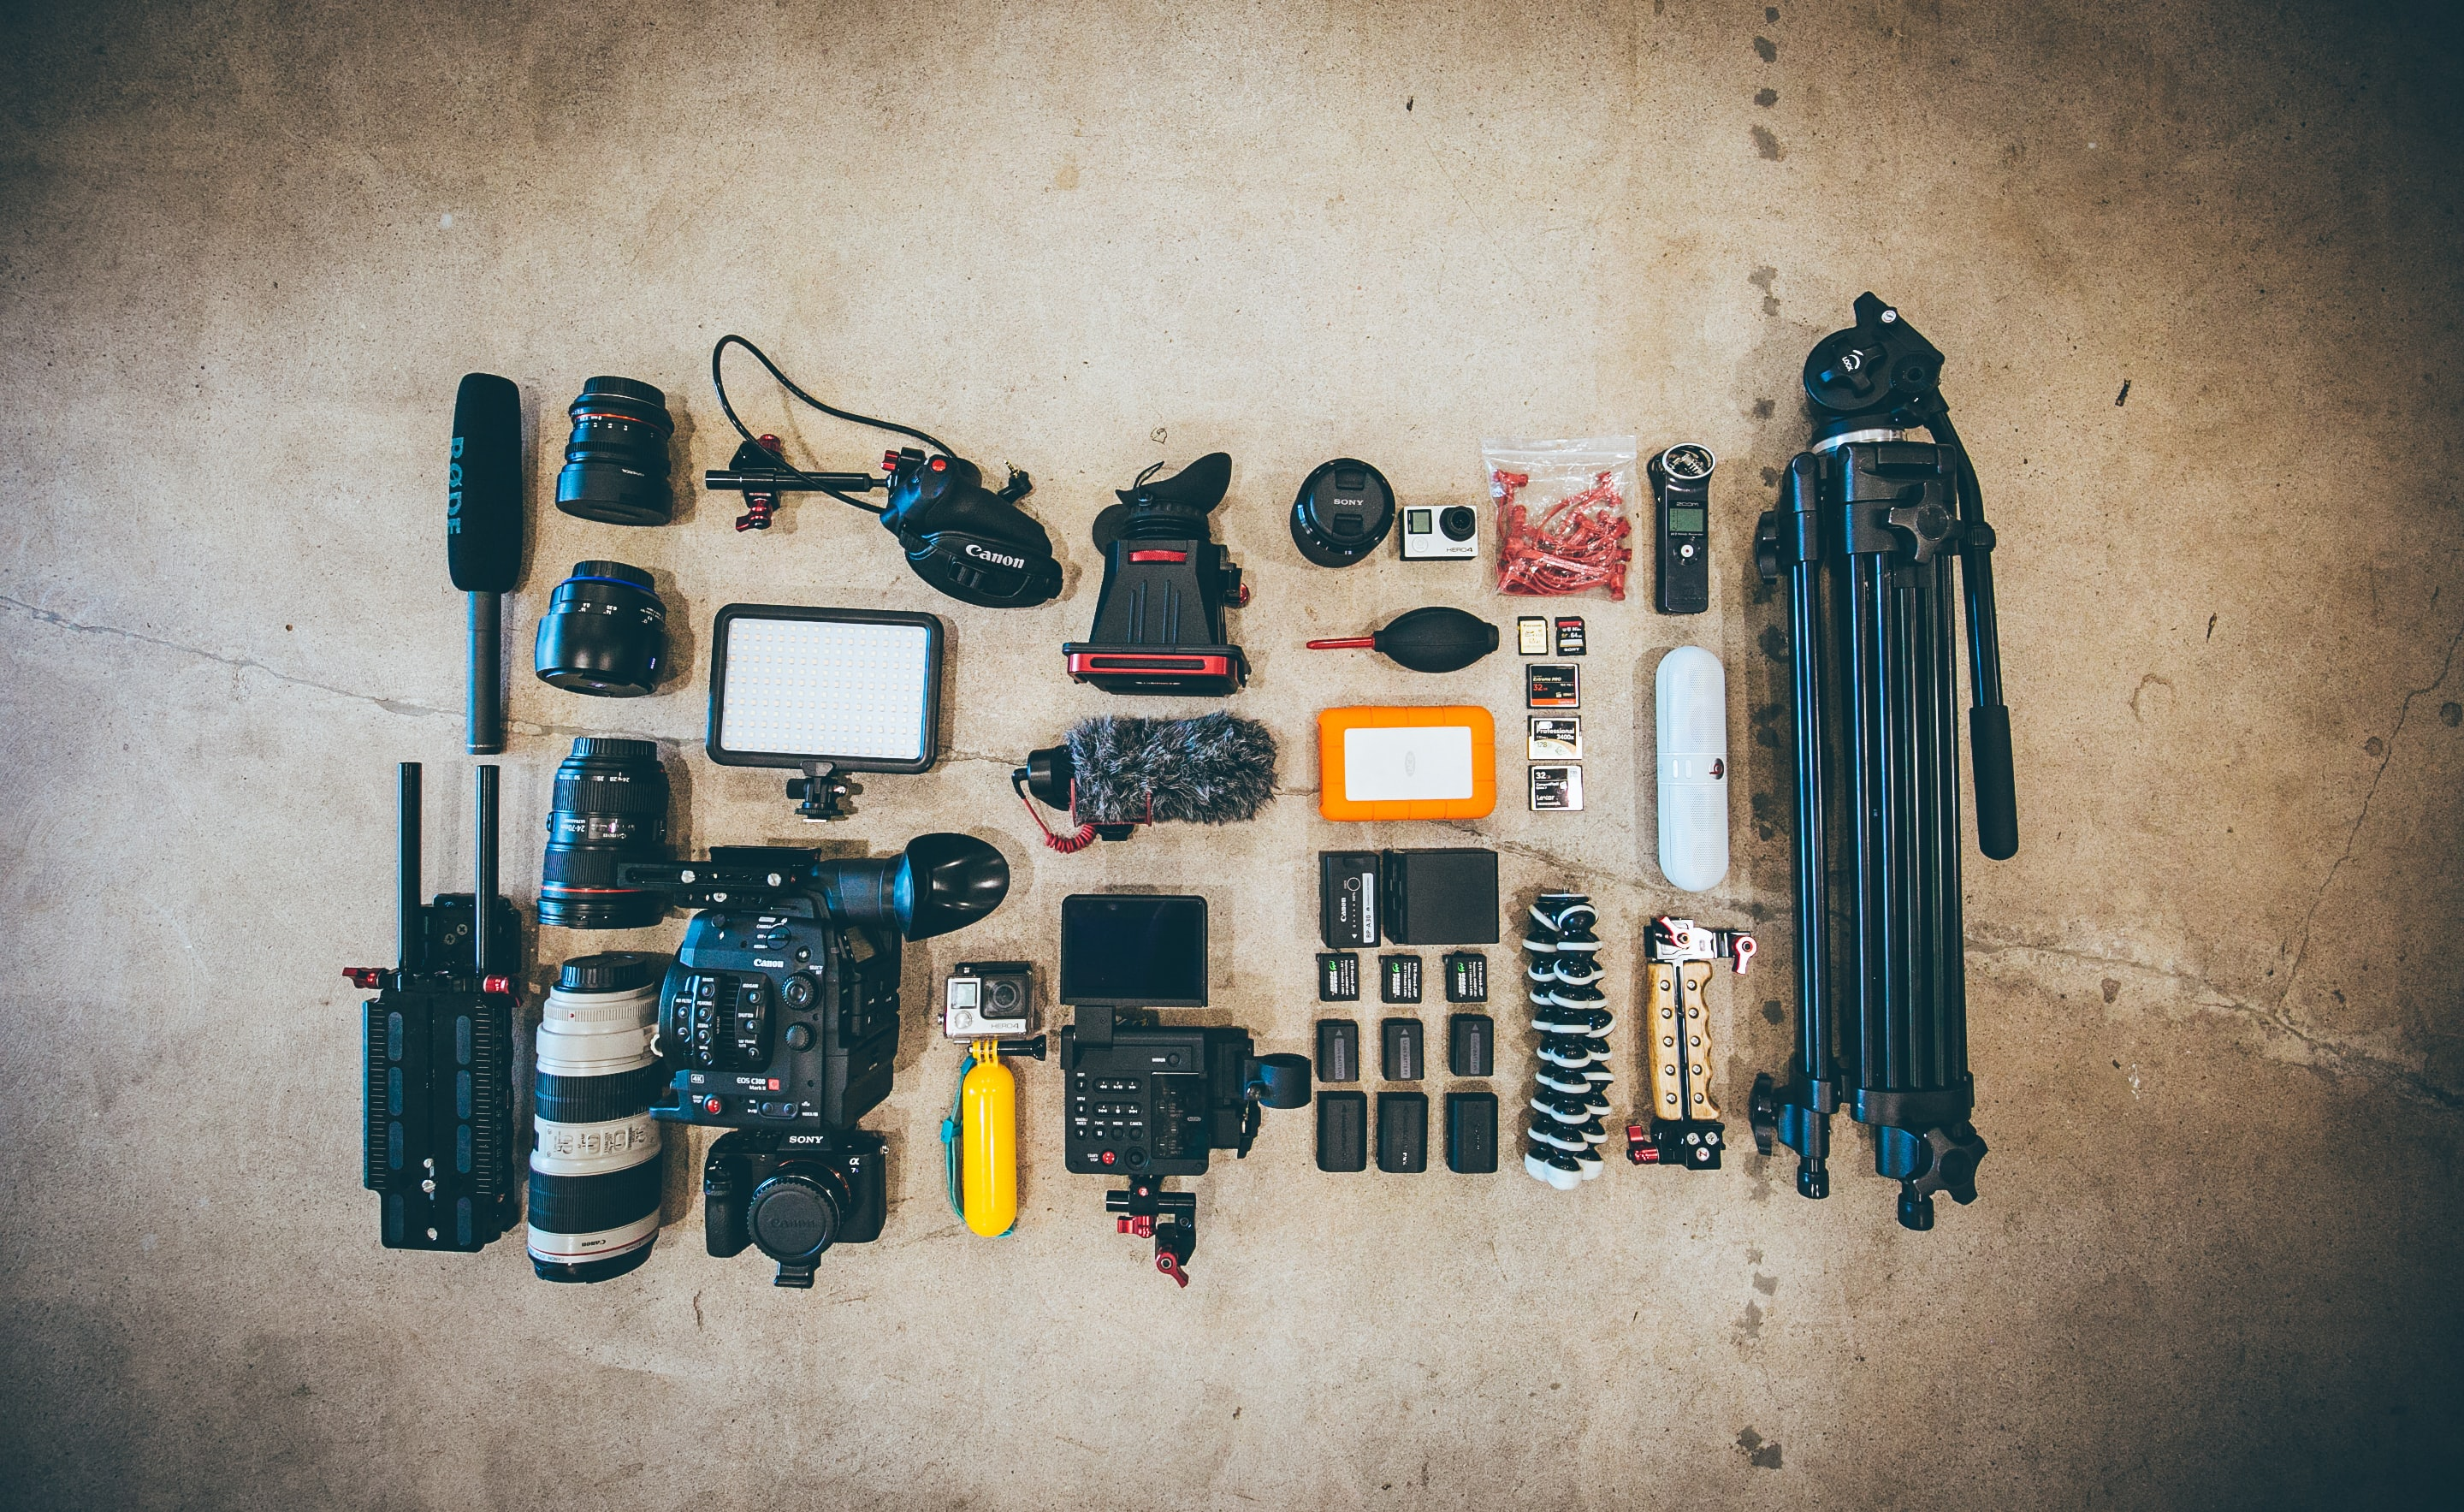 A flatlay with a large collection of video equipment